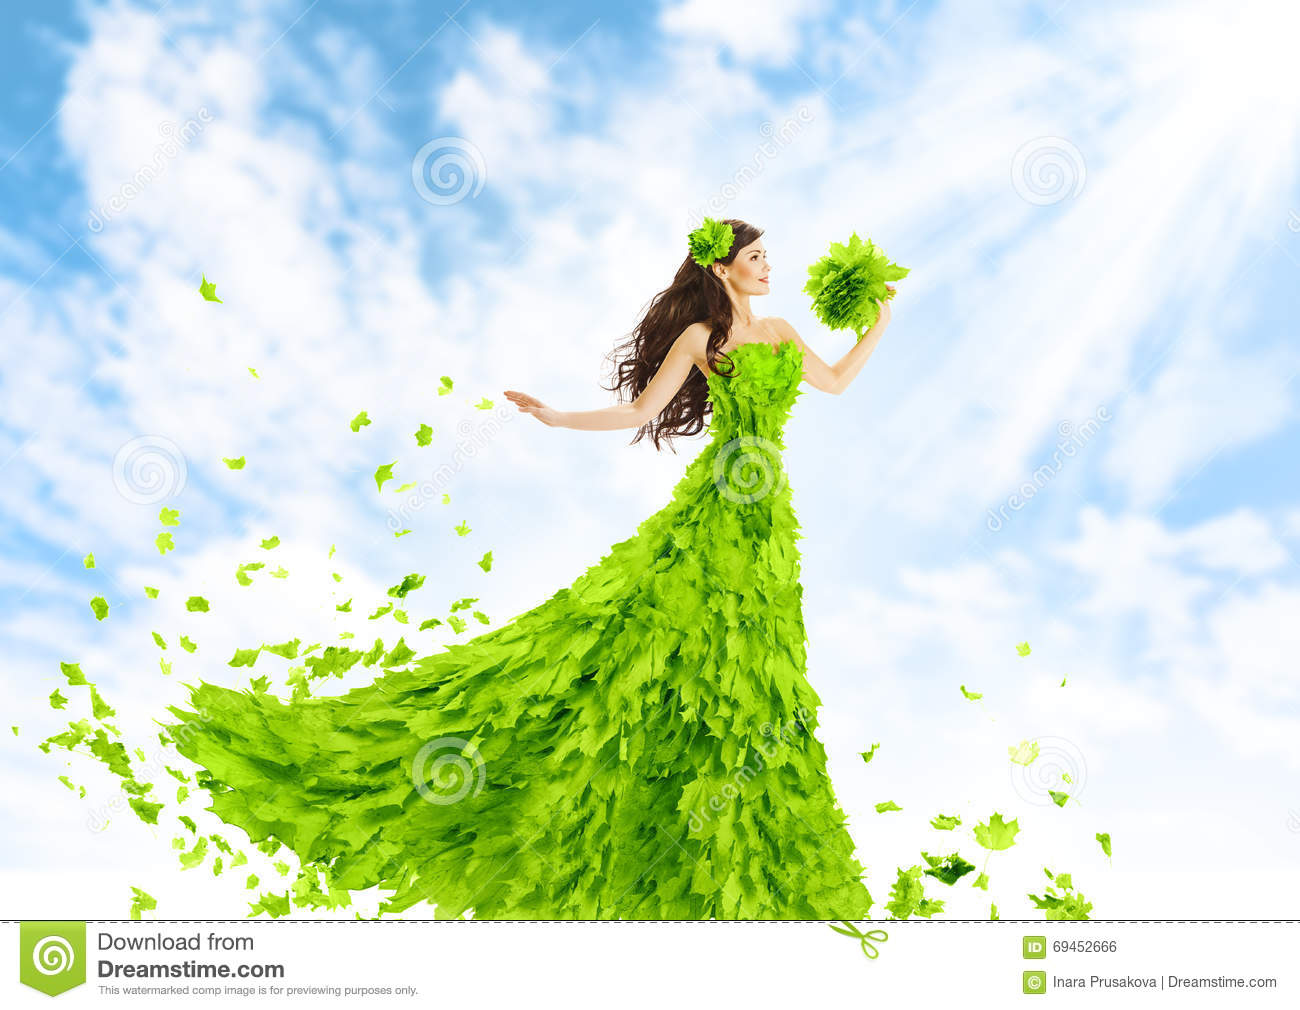 Green Fashion Royalty-Free Stock Photography